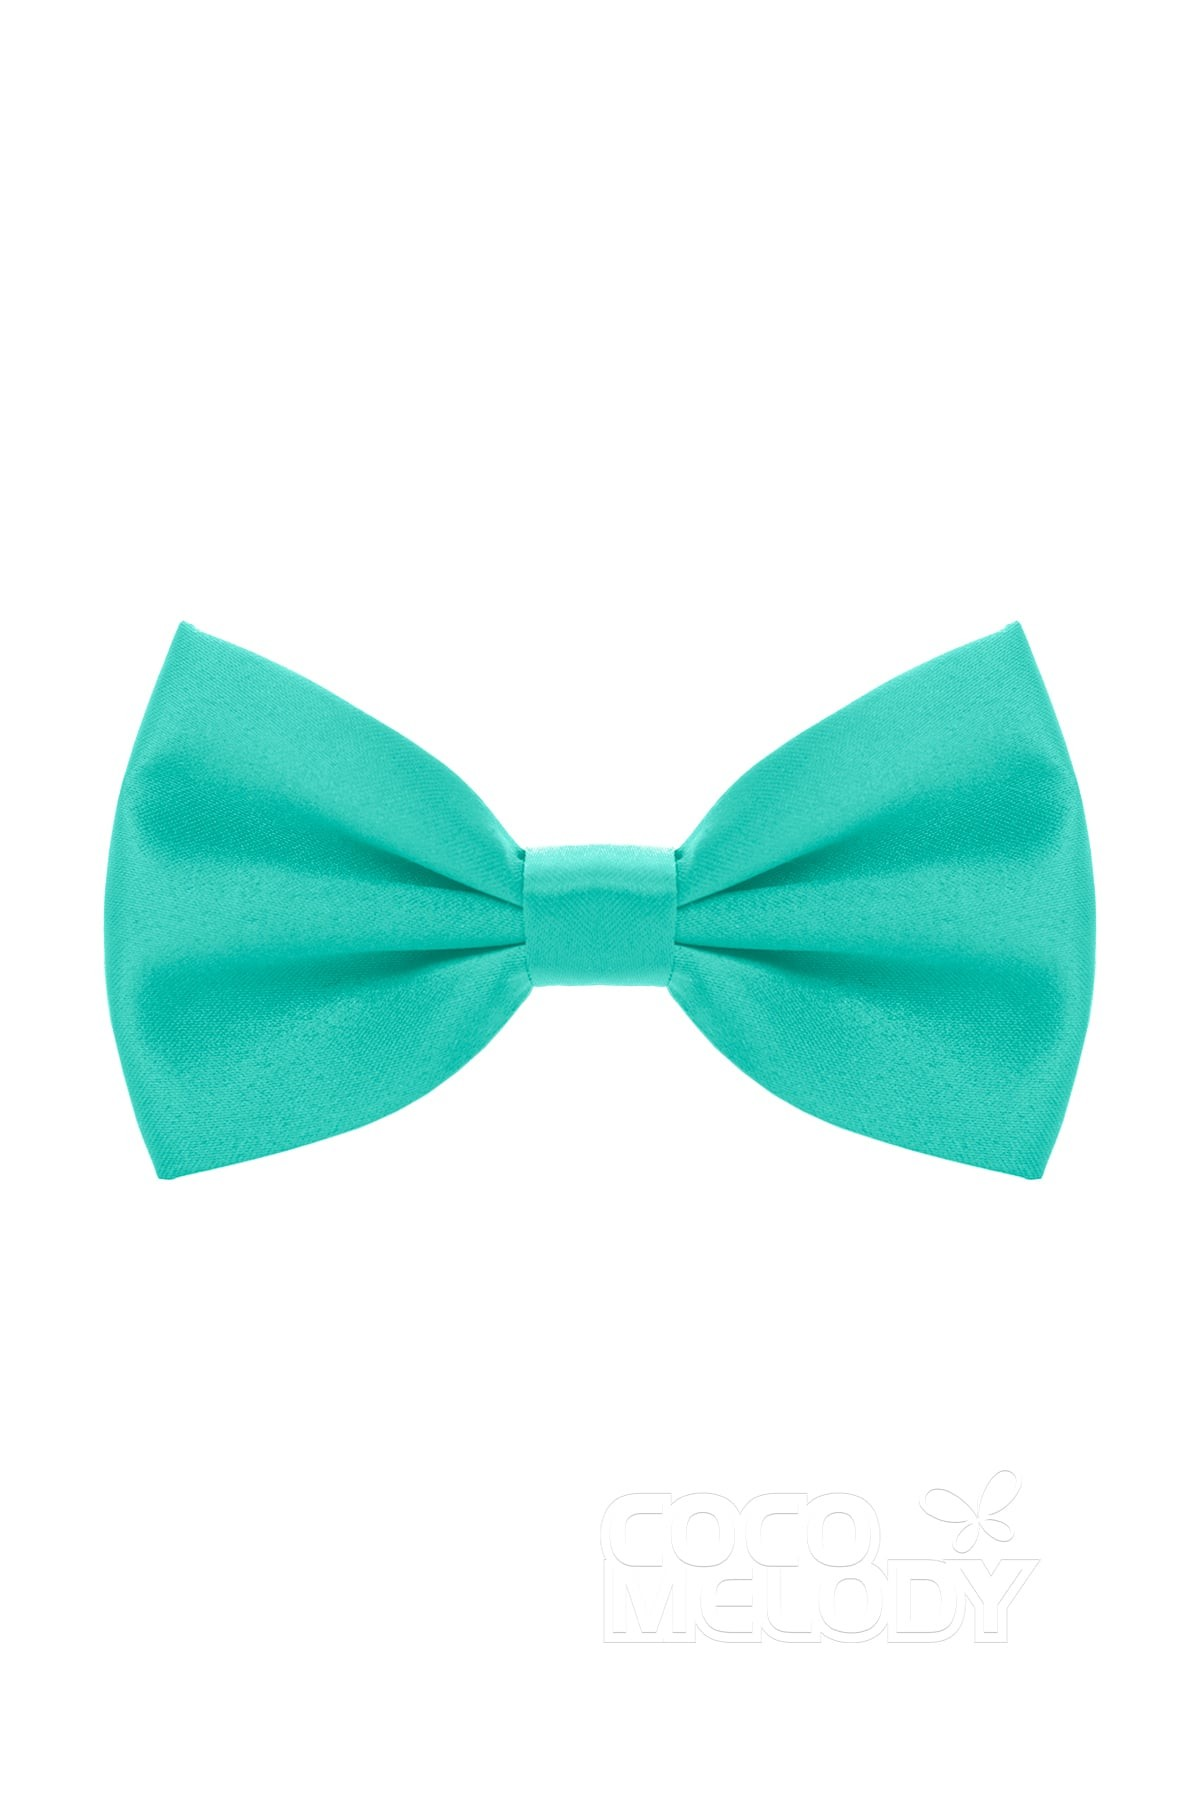 402319eb9222 Men's Satin Bow Ties CZ180004   Cocomelody